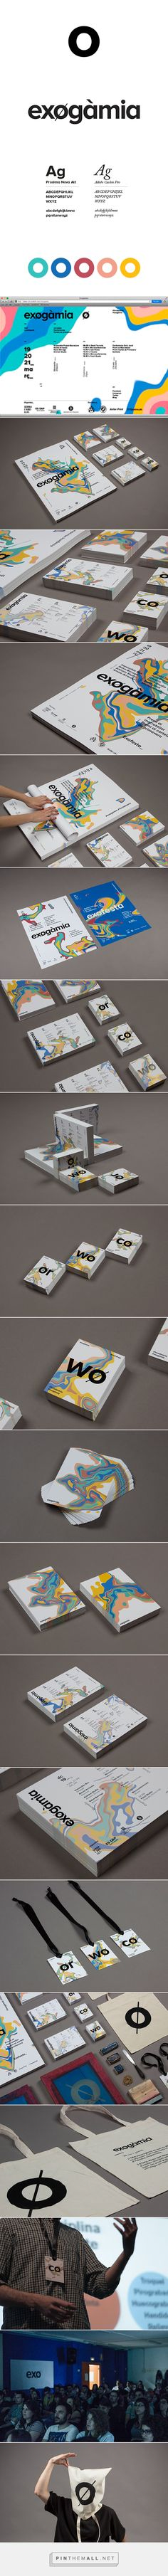 Exogàmia on Behance... - a grouped images picture - Pin Them All